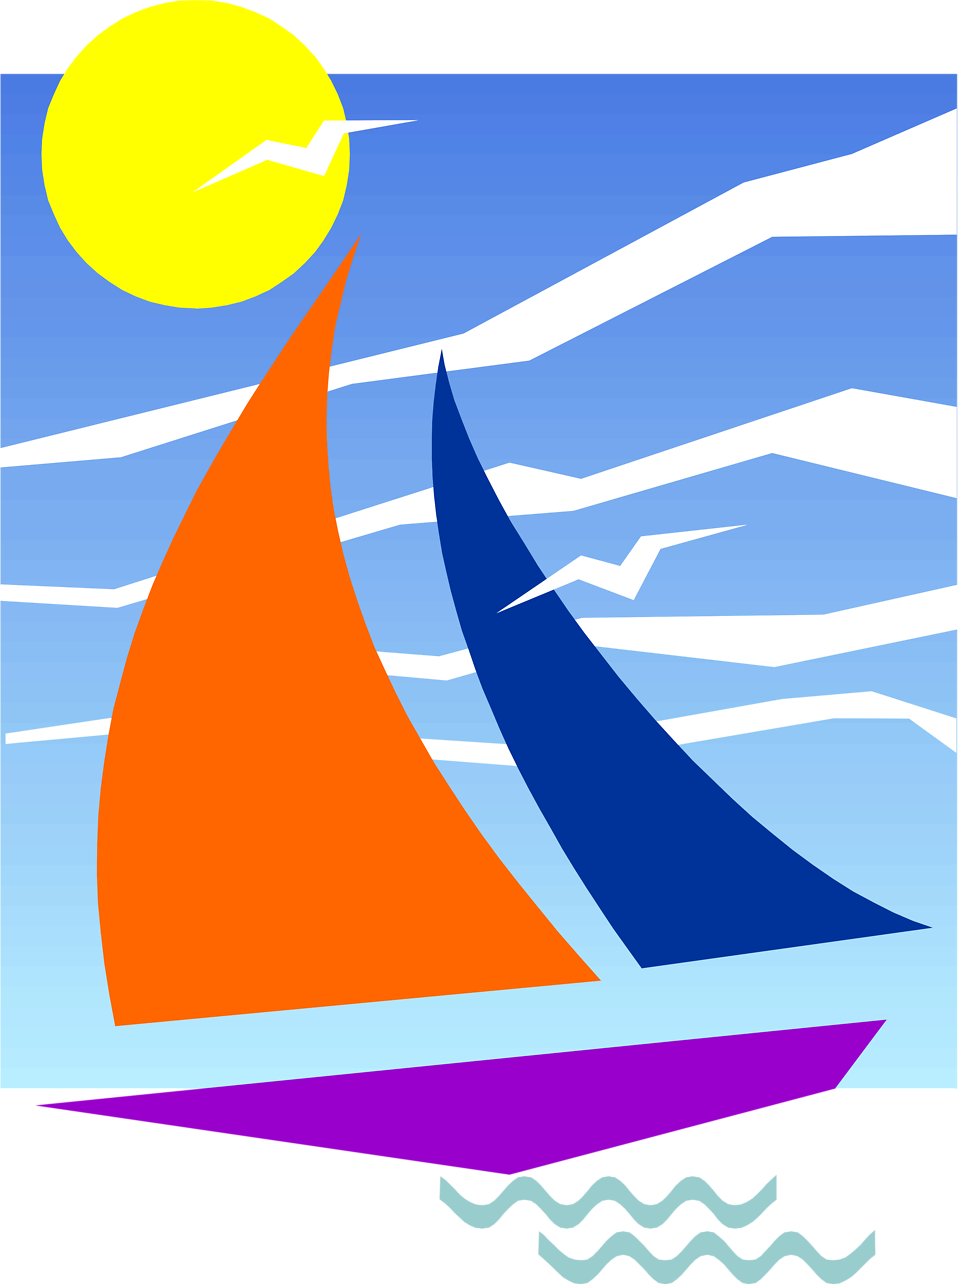 Sun looking over ocean clipart graphic free download Sailboat | Free Stock Photo | Illustration of a sailboat under the ... graphic free download